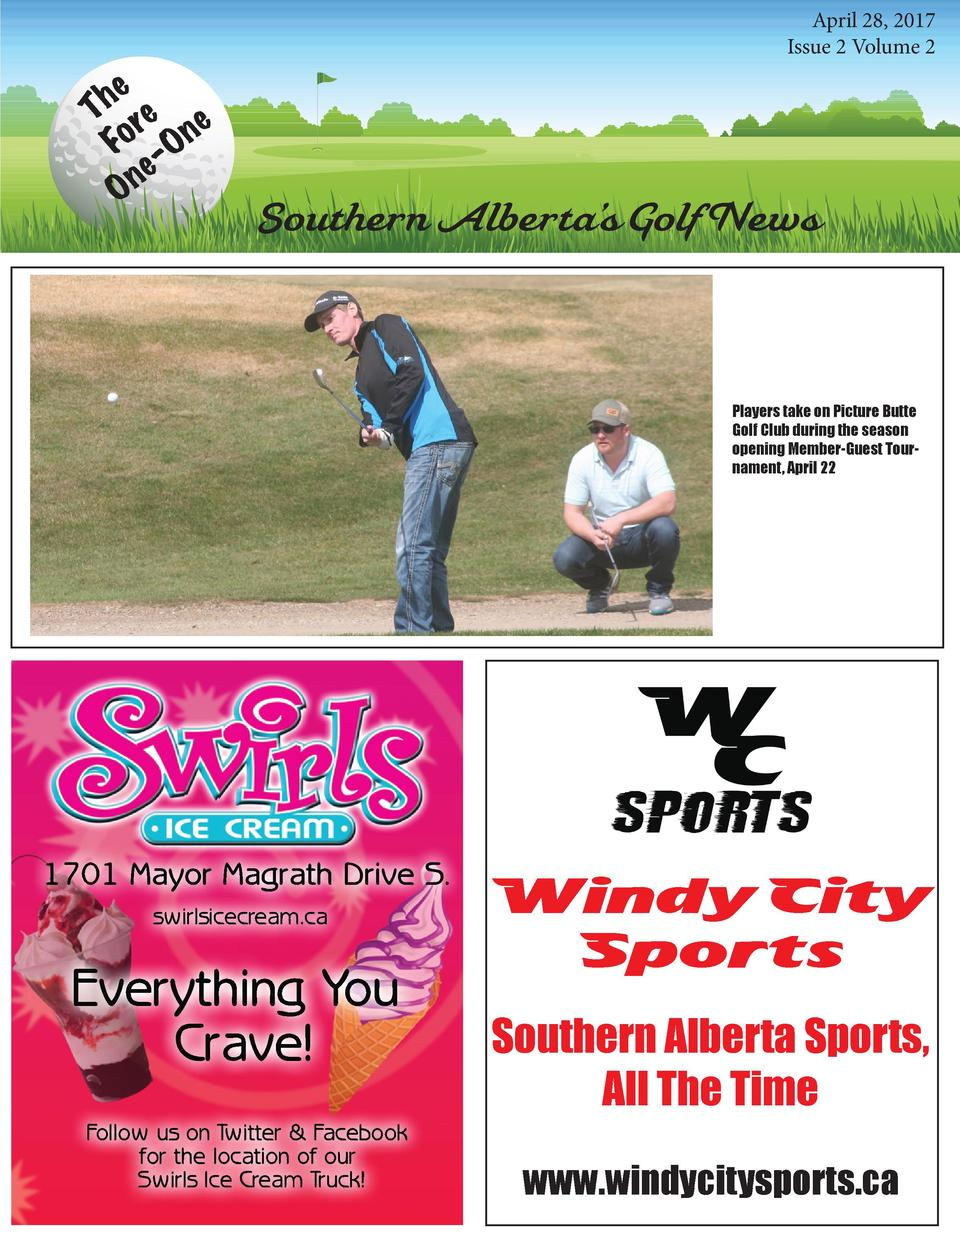 e h T re e Fo -On e n O  April 28, 2017 Issue 2 Volume 2  Southern Alberta   s Golf News  Players take on Picture Butte Go...